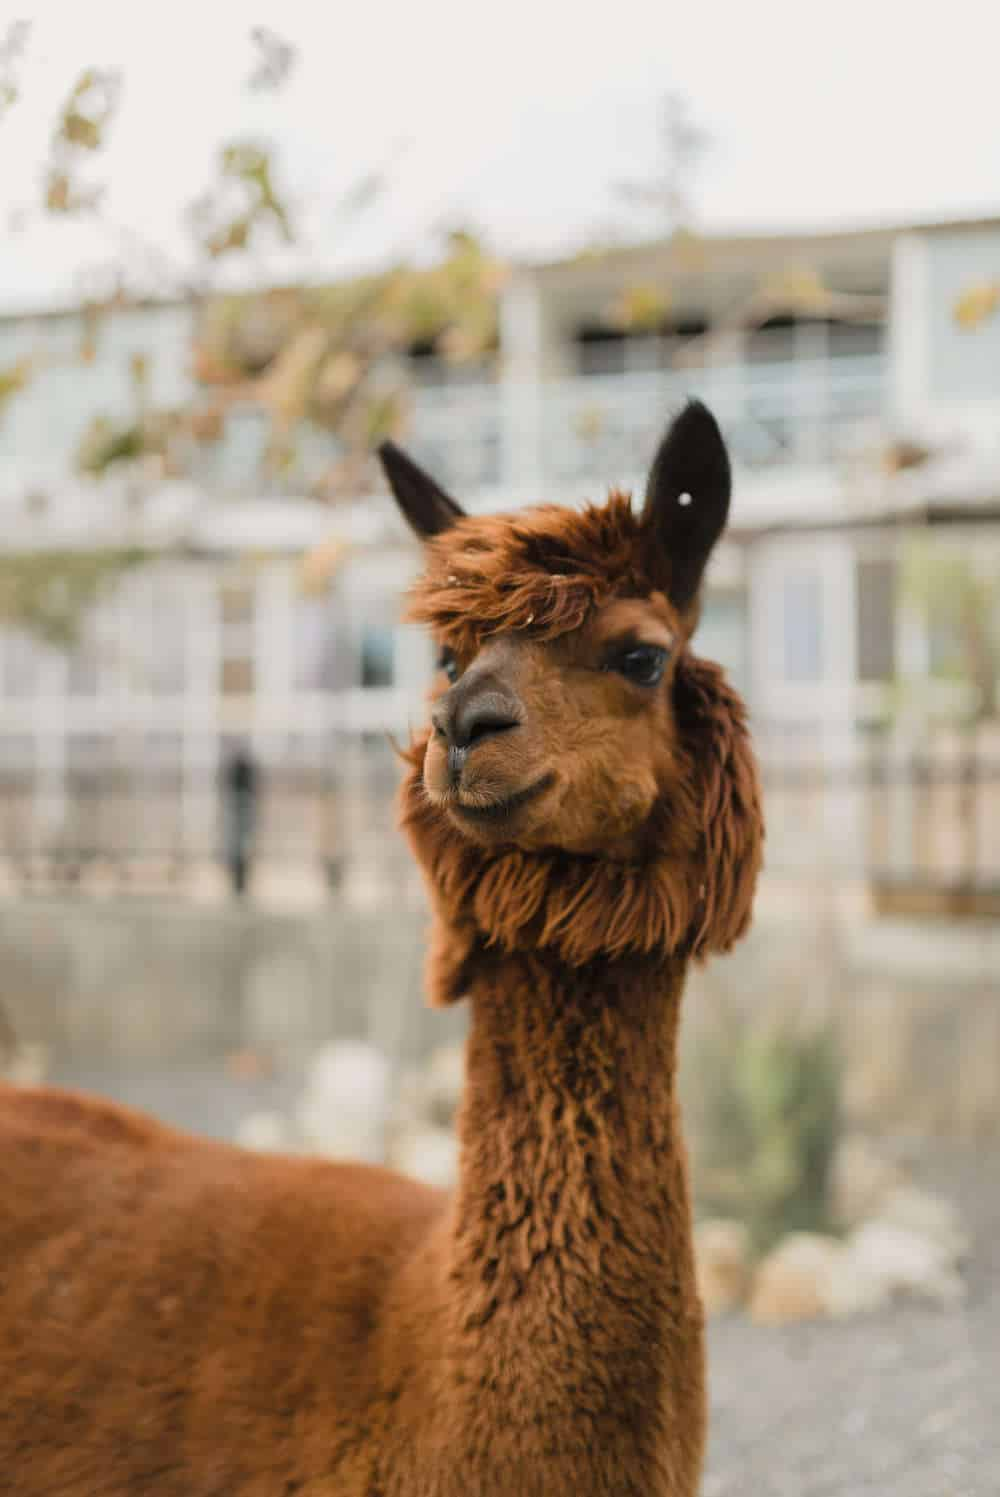 an alpaca animal representing the Nashville Zoo at Grassmere